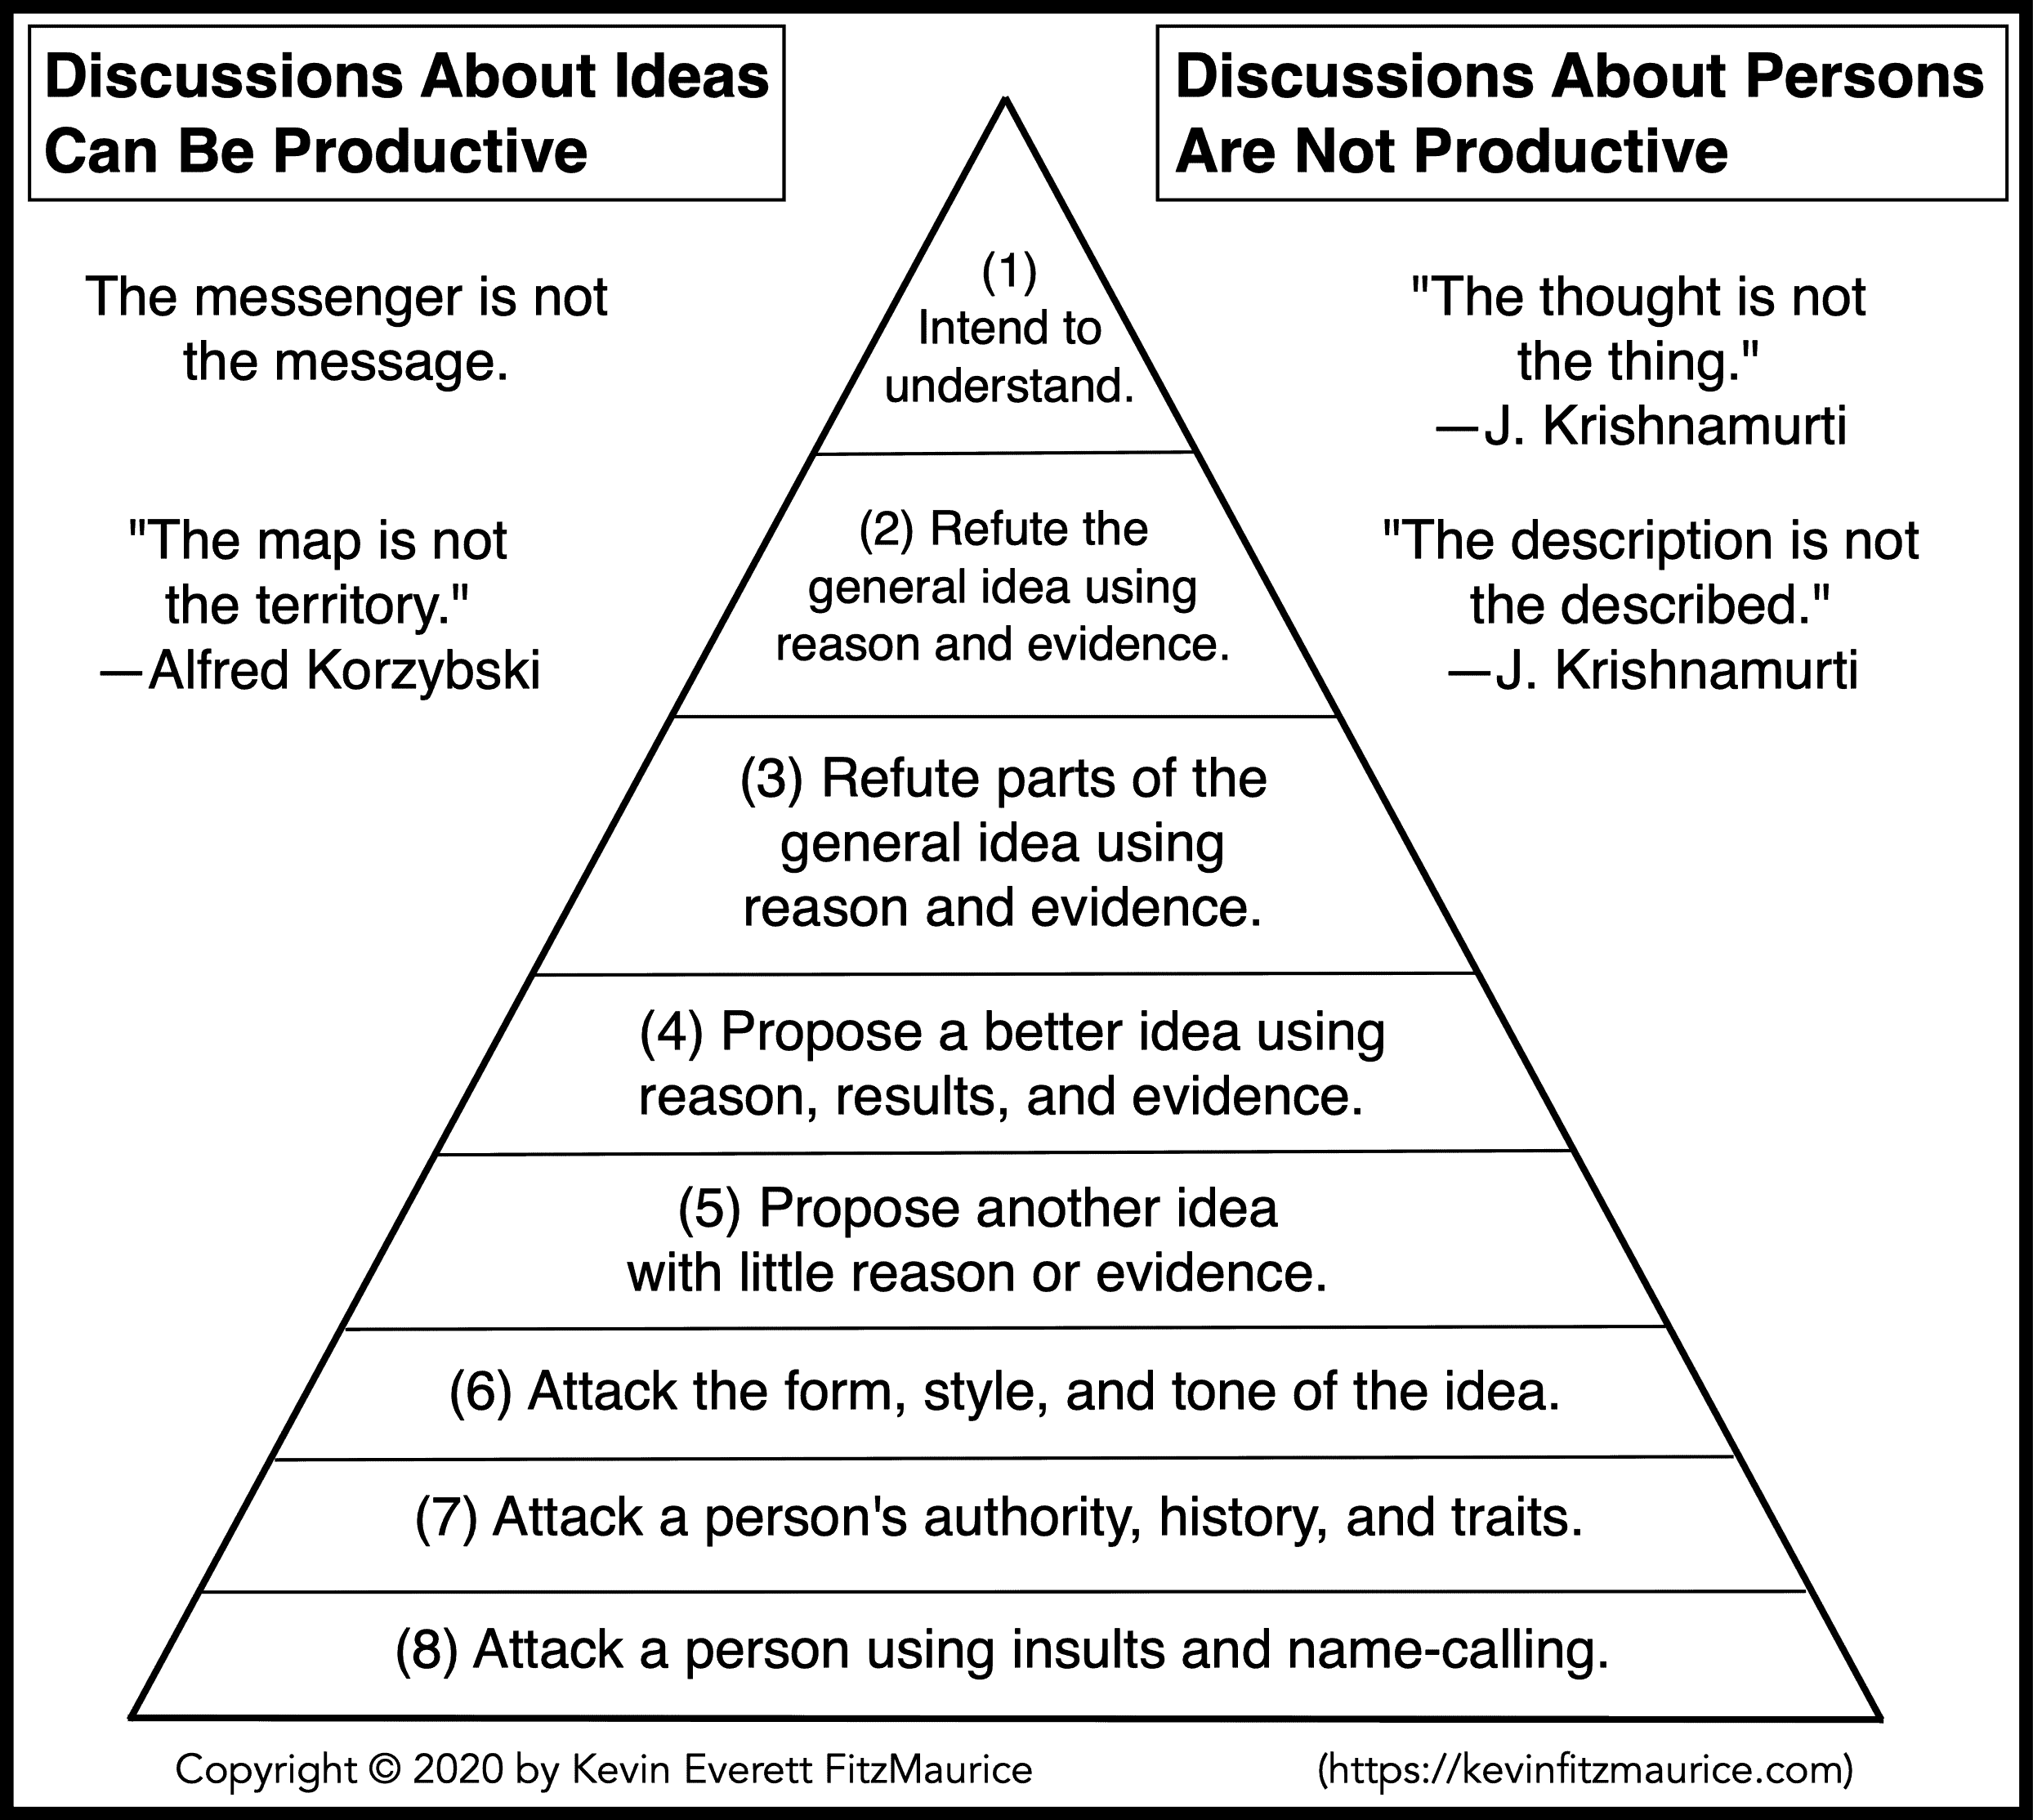 How to discuss ideas and not people.